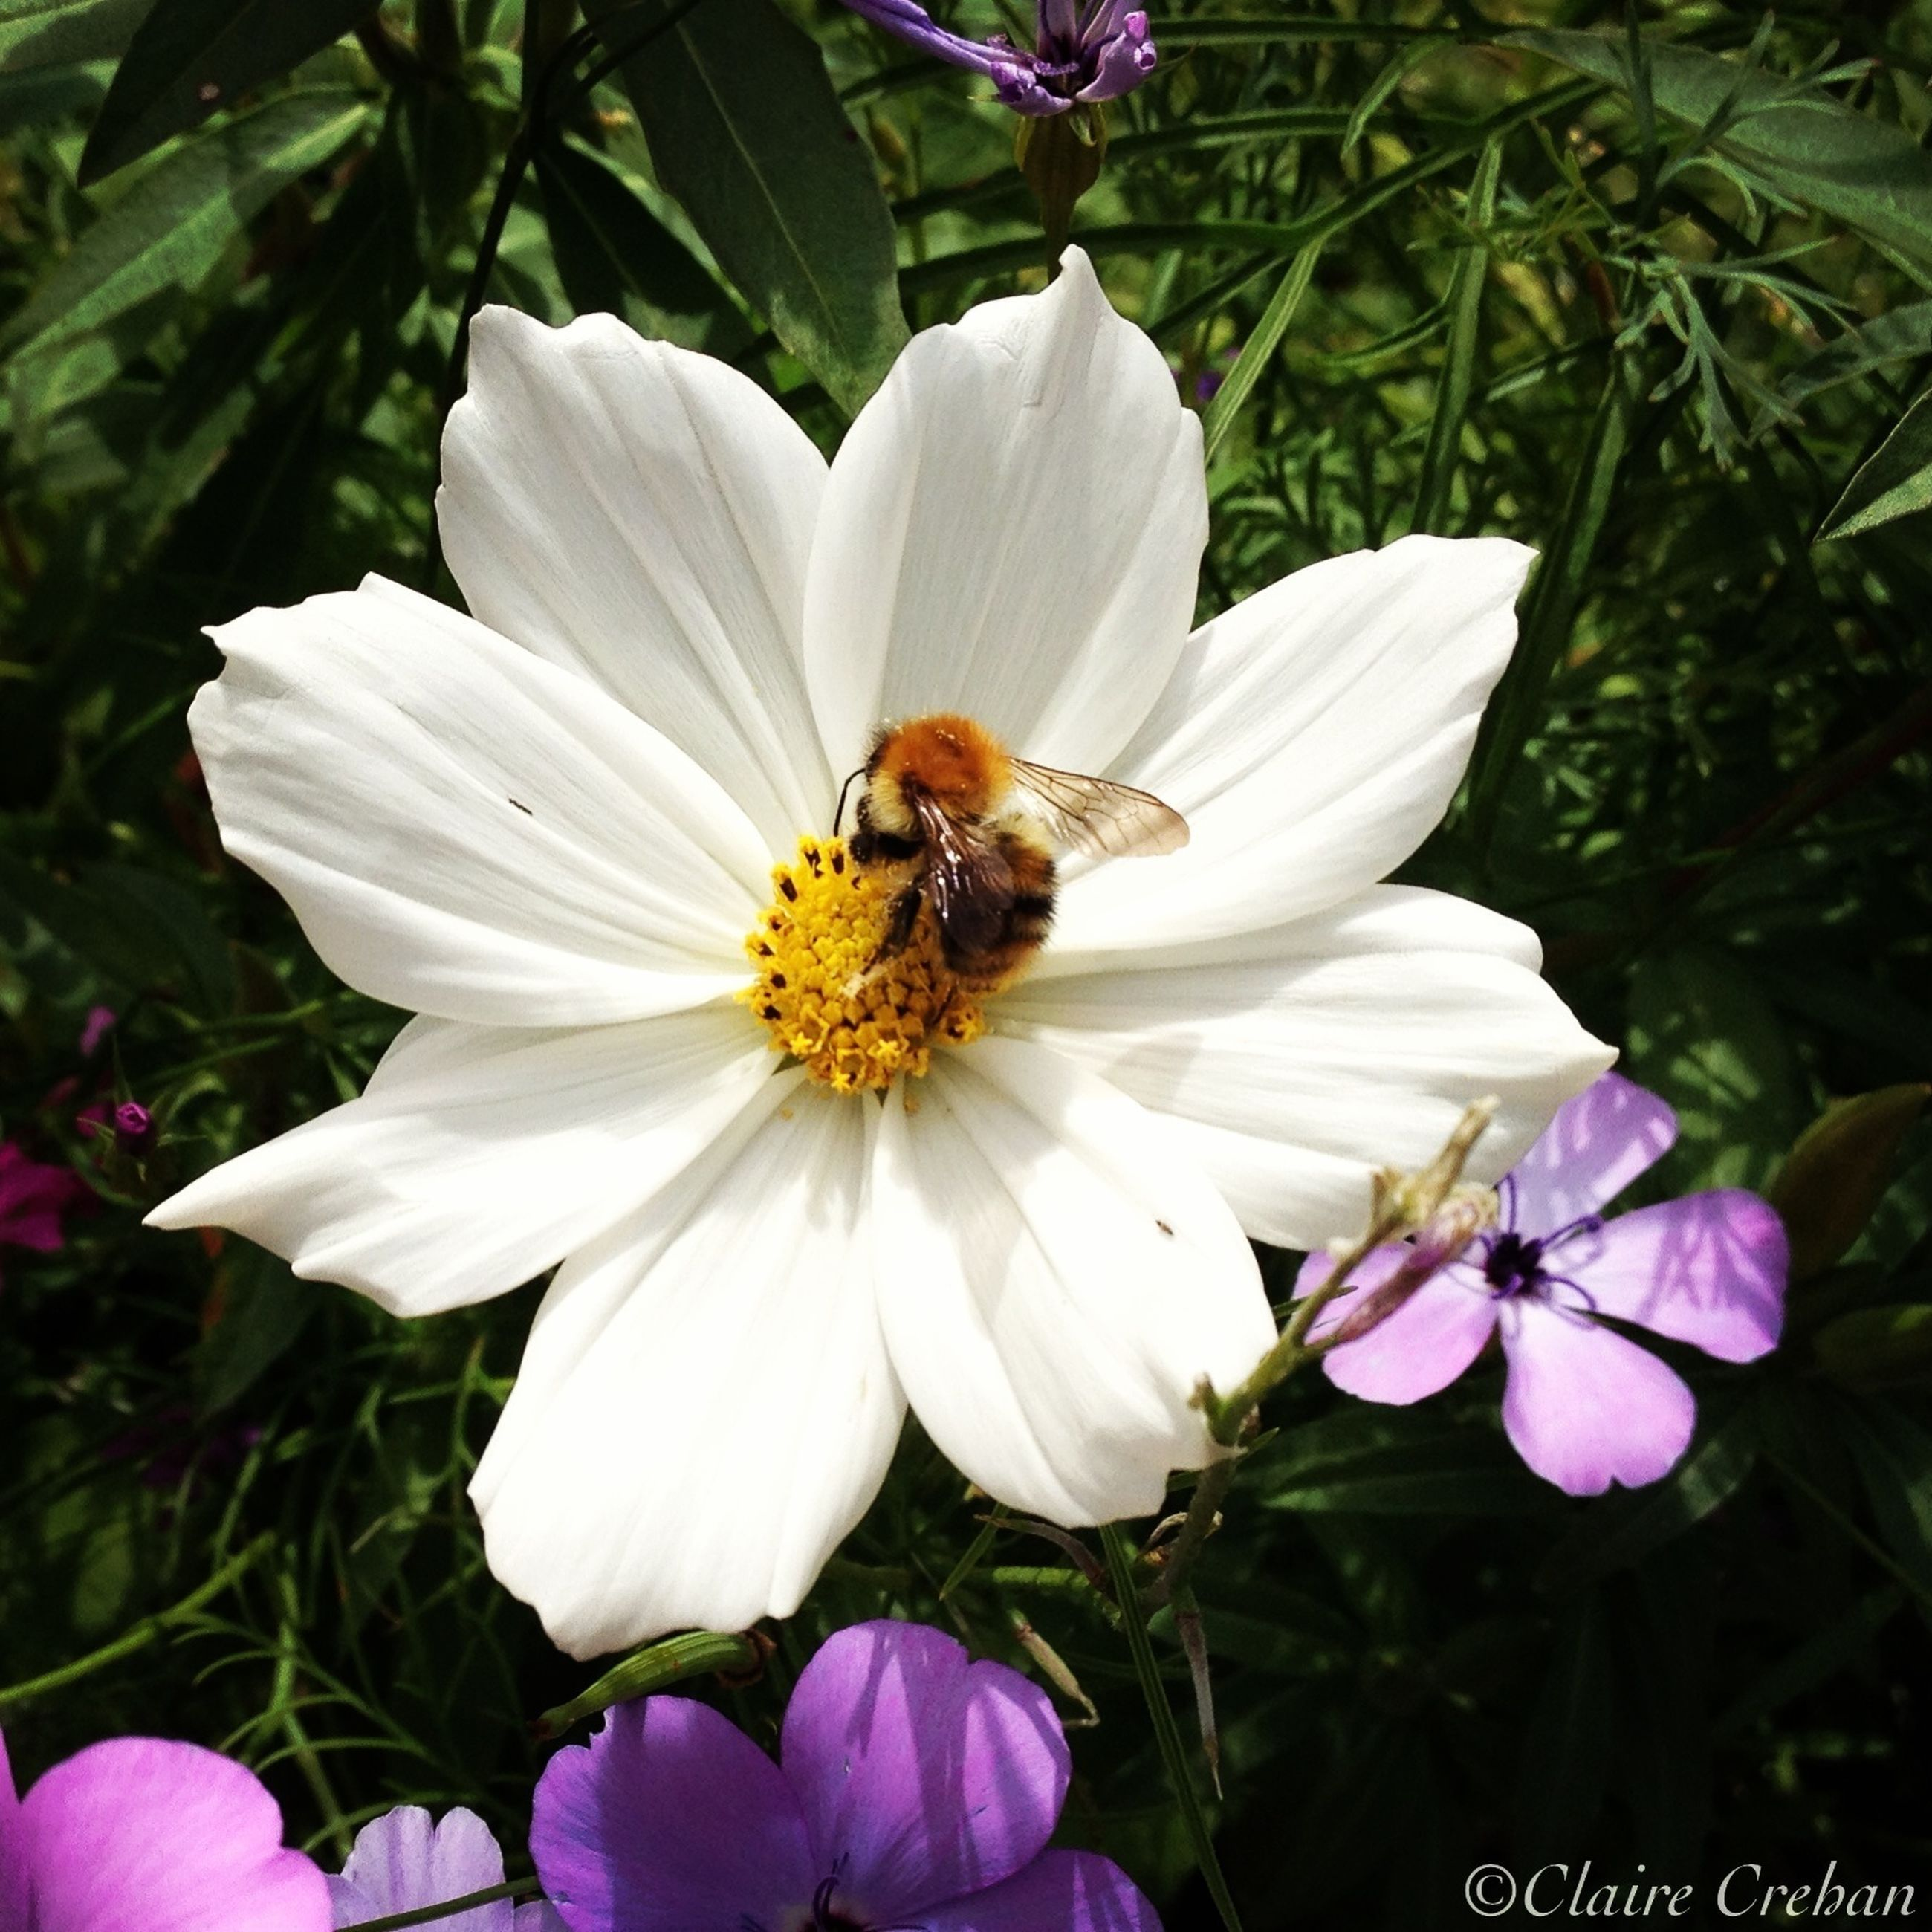 flower, insect, animal themes, one animal, animals in the wild, petal, wildlife, freshness, flower head, fragility, pollination, bee, growth, beauty in nature, pollen, white color, symbiotic relationship, nature, plant, close-up